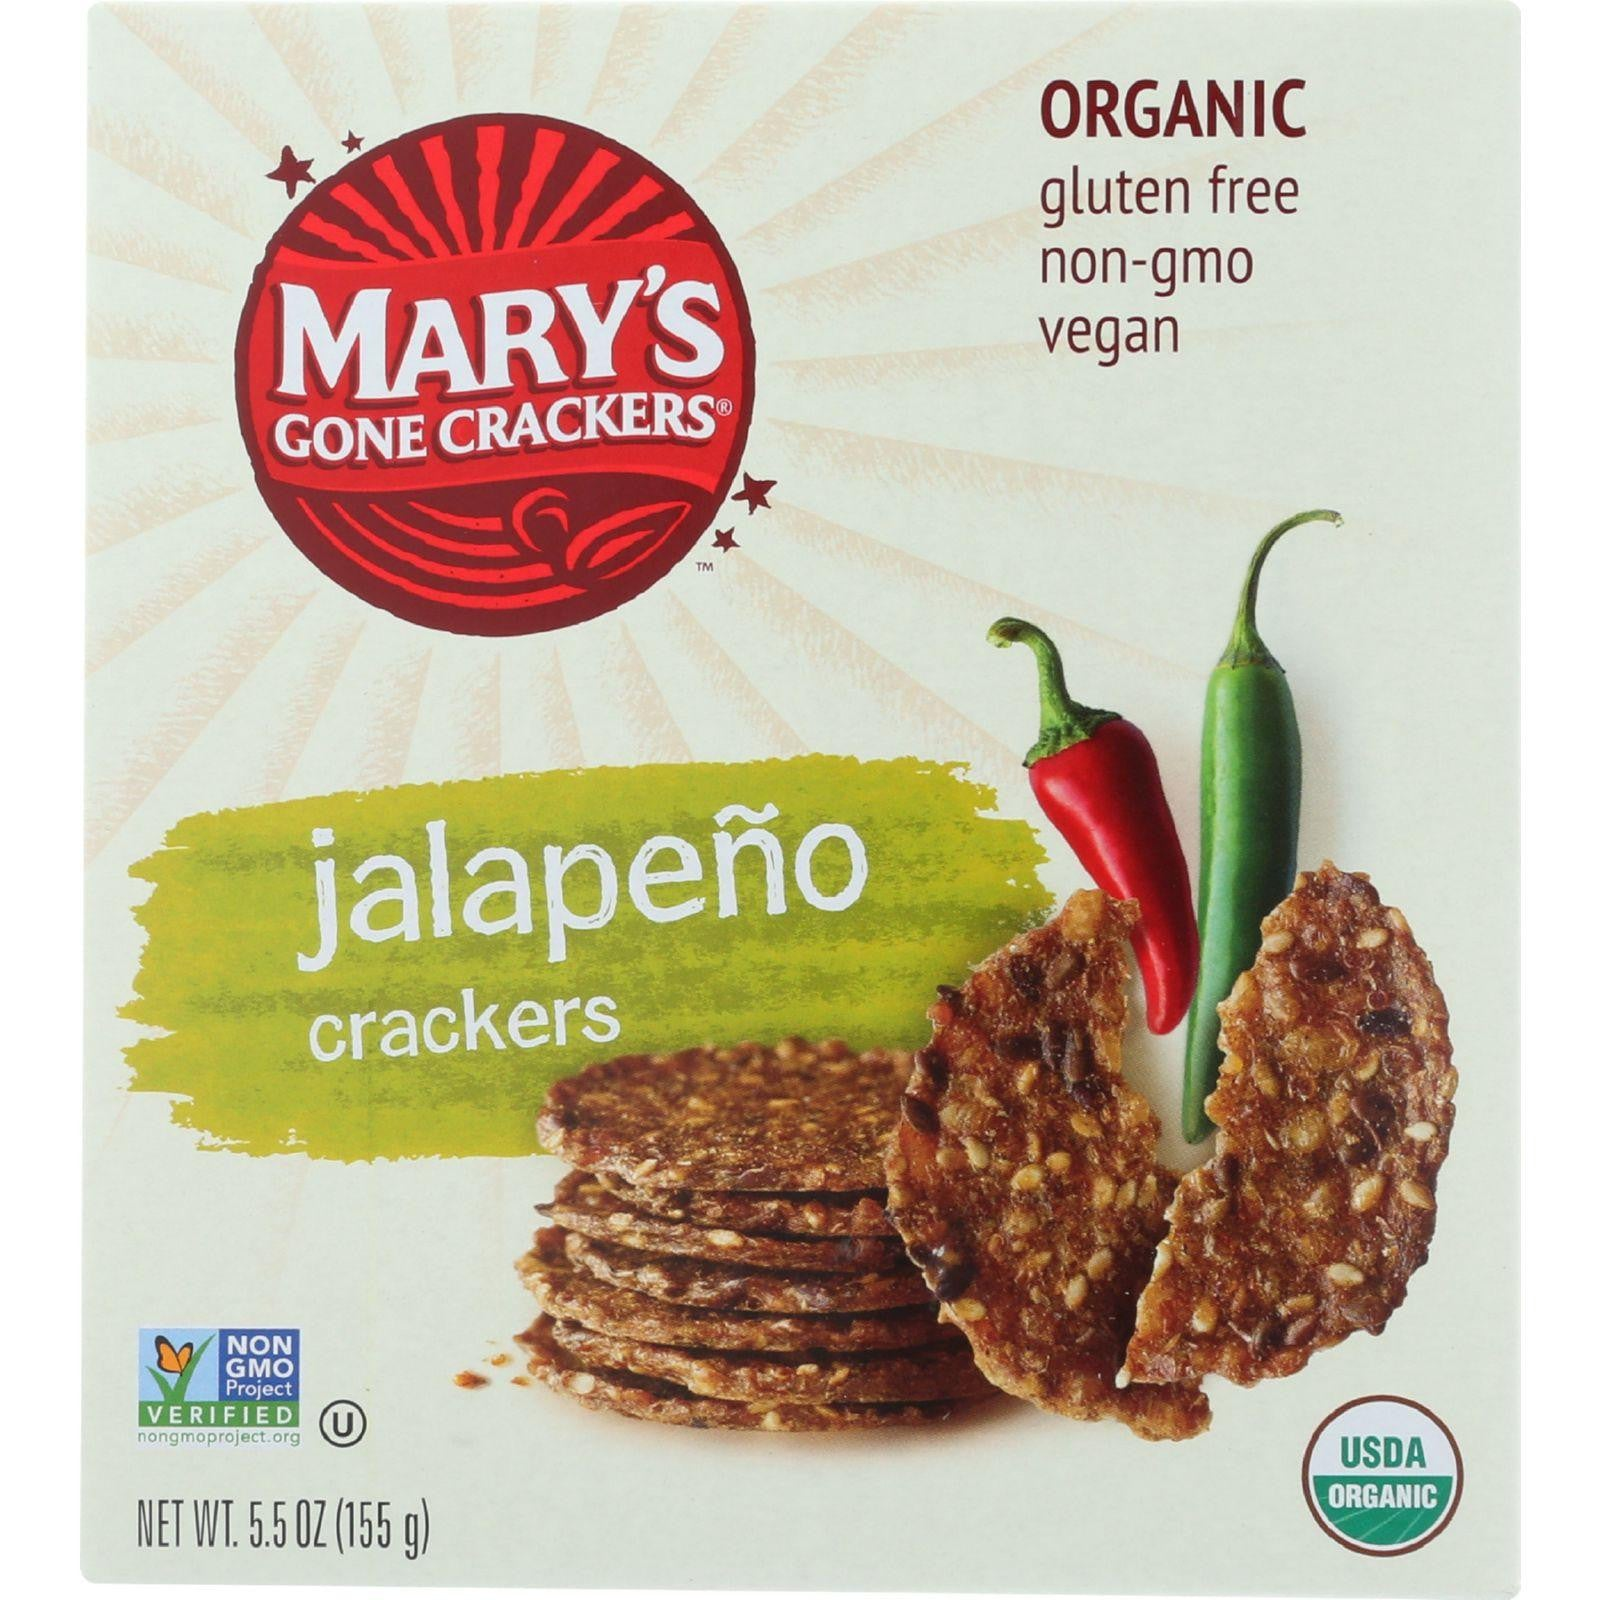 Mary's Gone Crackers Organic Hot 'n Spicy Jalapeno Crackers (Gluten Free)